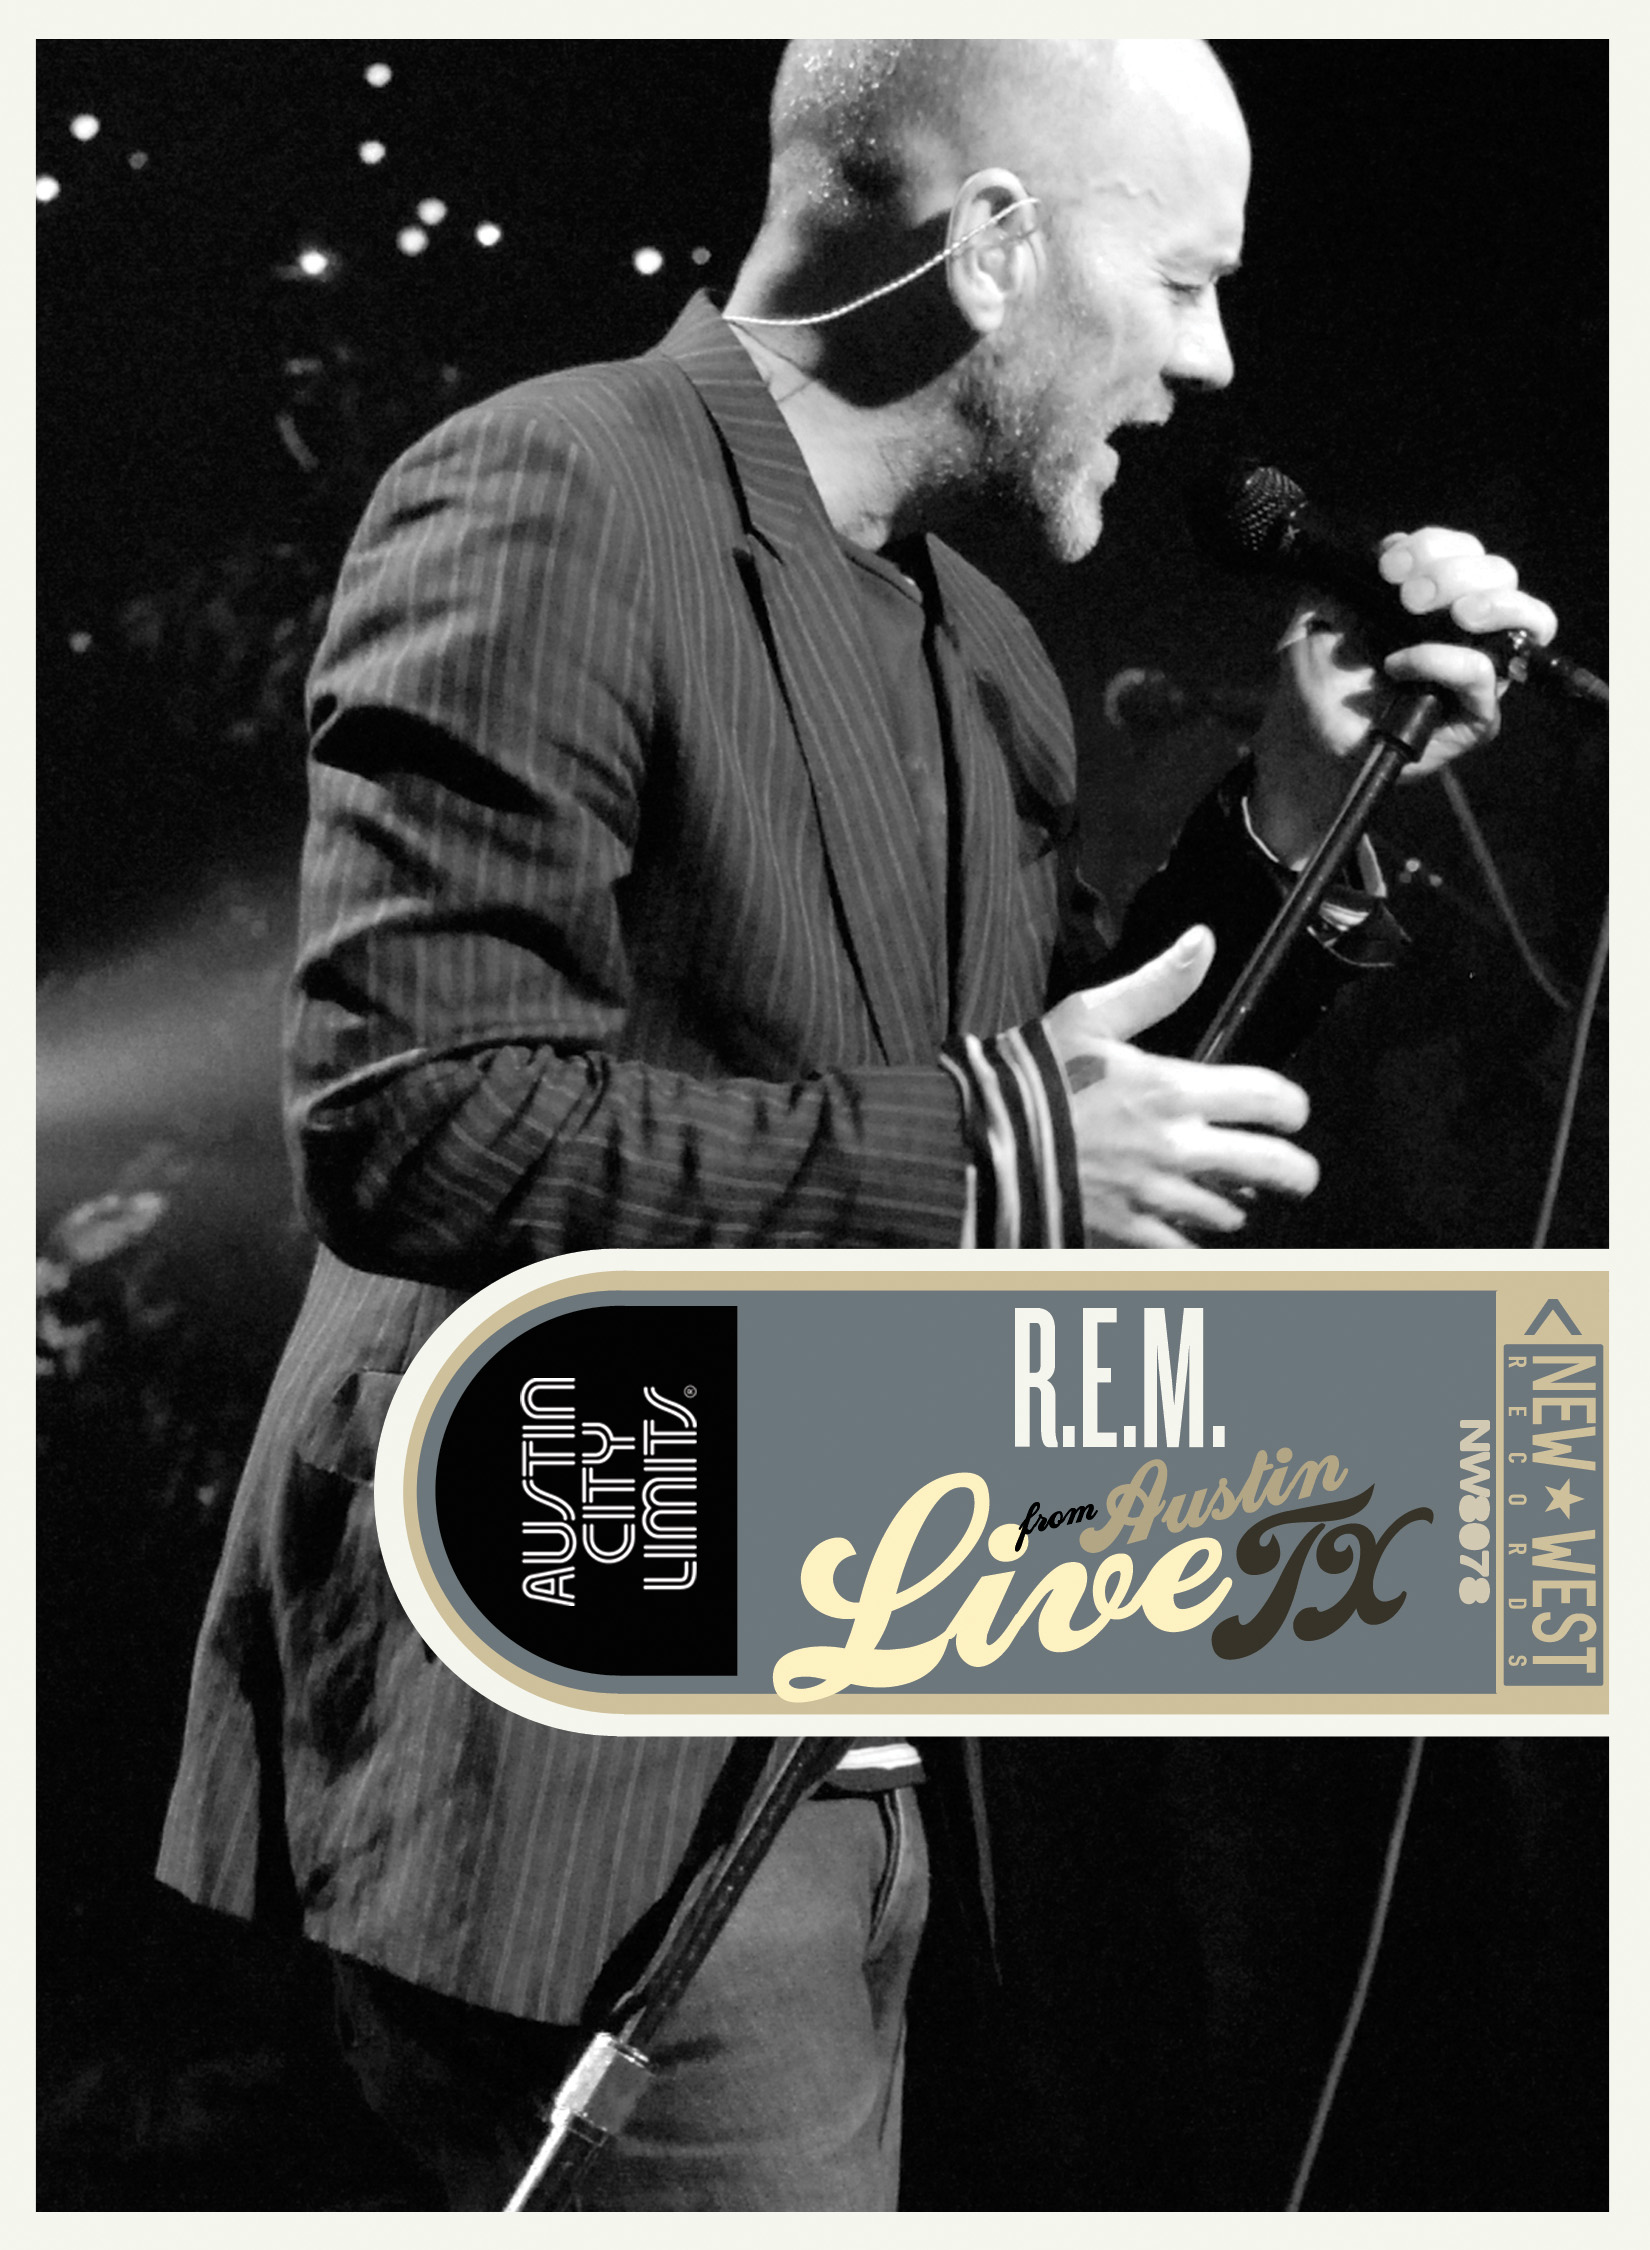 R.E.M. to release 'Live From Austin, TX' DVD with complete 'Austin City Limits' show